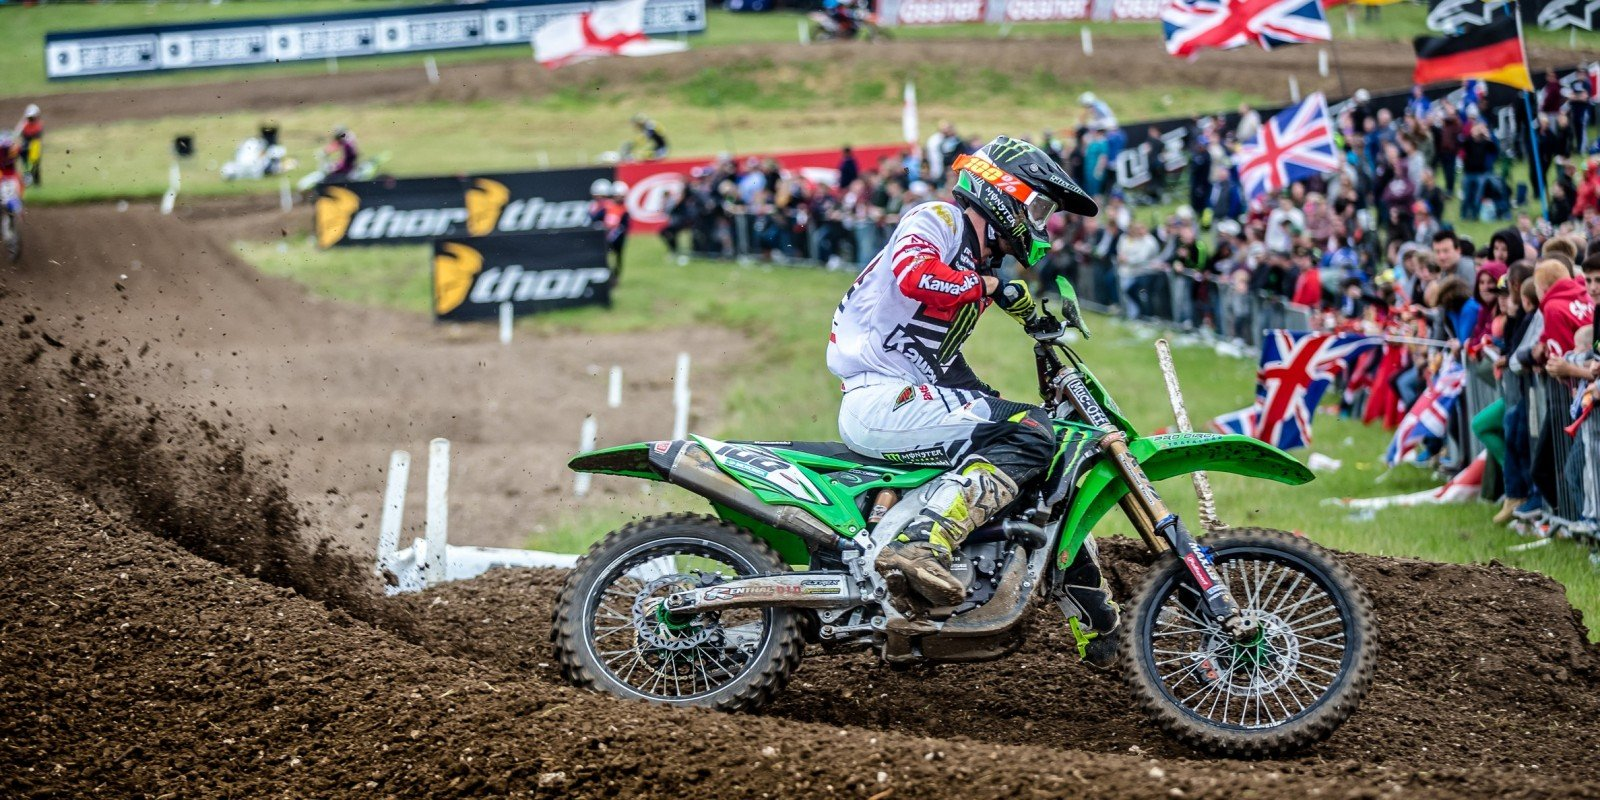 Tommy Searle at the 2016 MXGP in UK